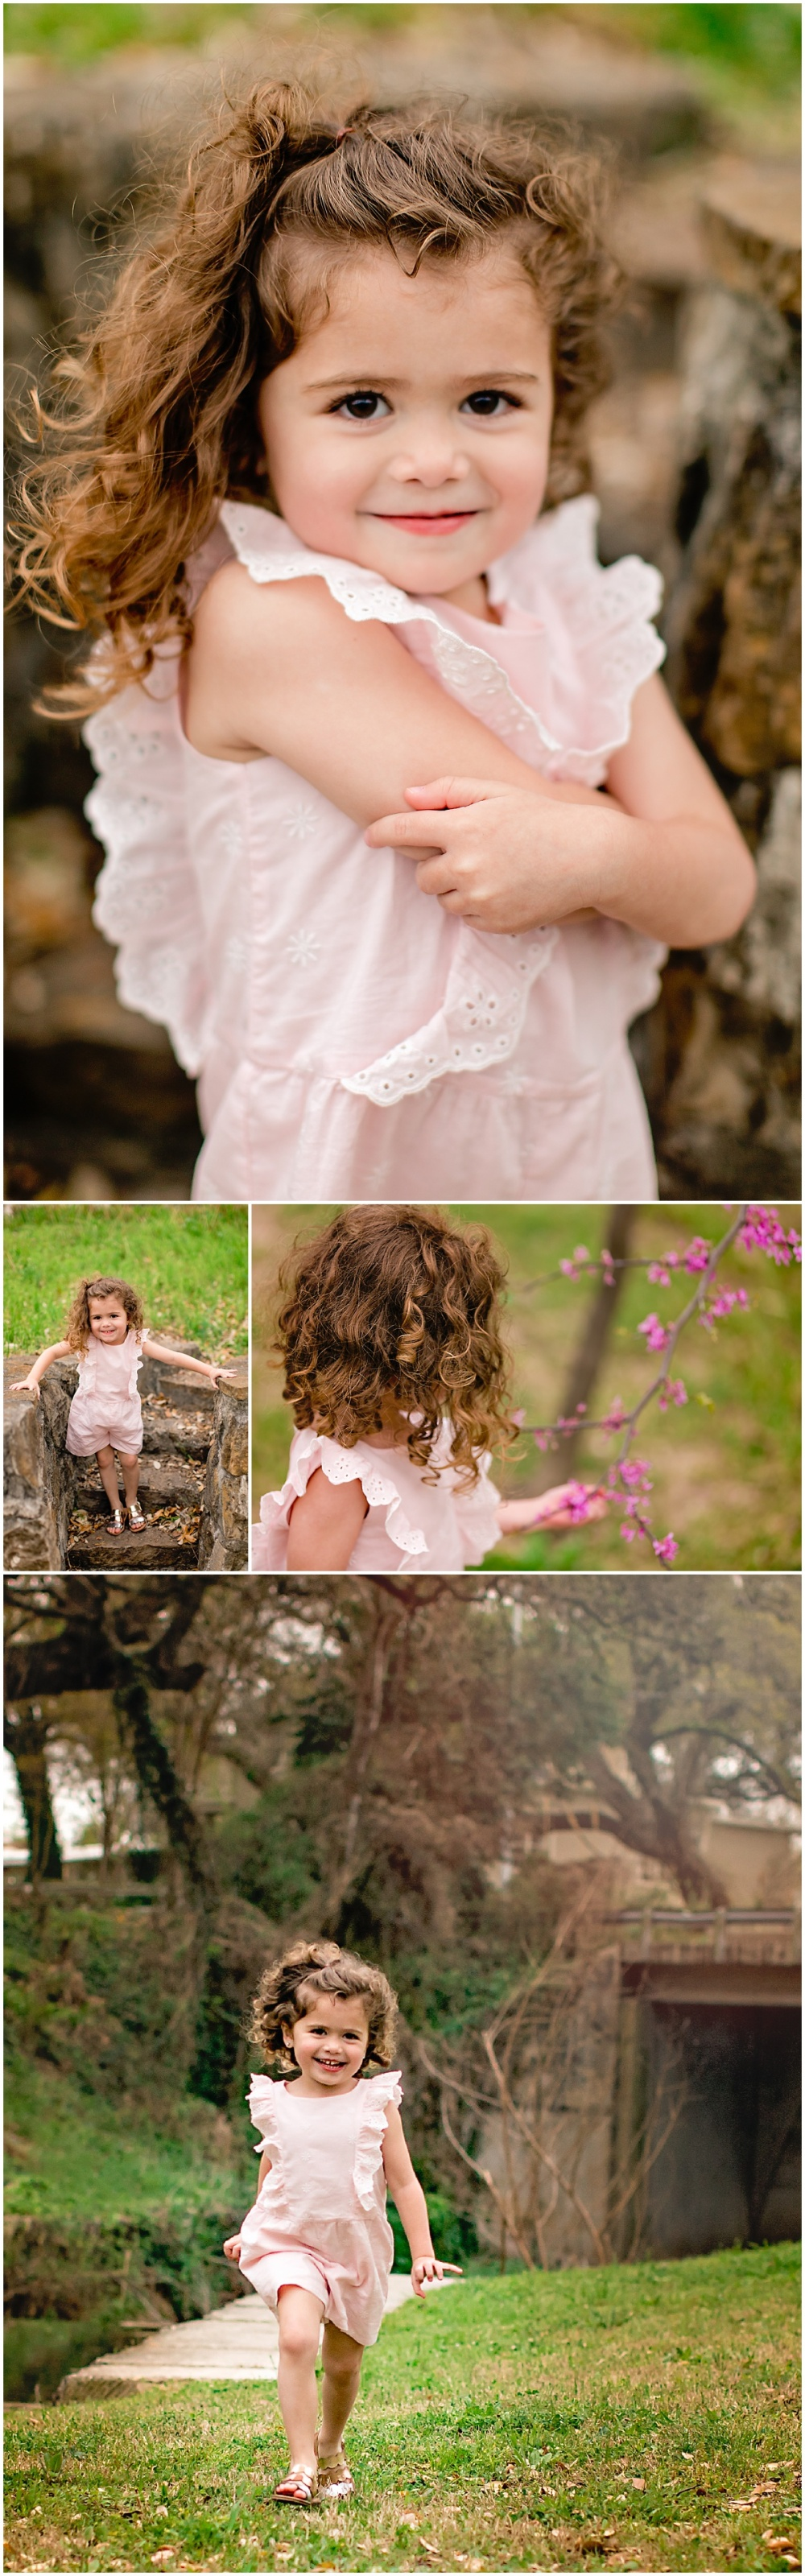 Family-Children-Birthday-Portraits-San-Antonio-Hill-Country-Texas-Carly-Barton-Photography_0004.jpg